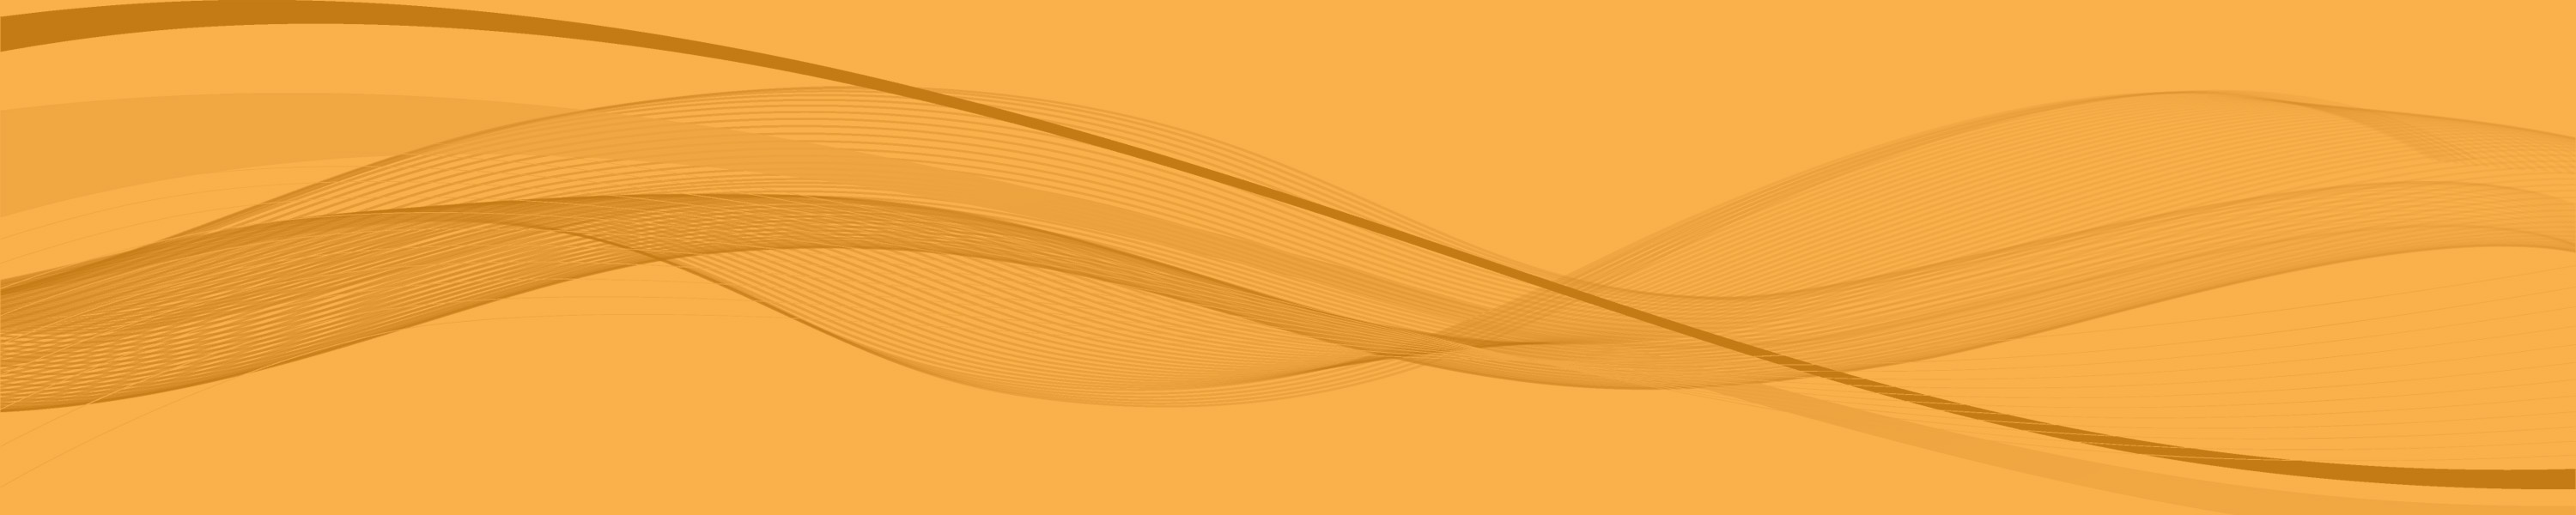 Orange_Swoosh_Banner.jpg